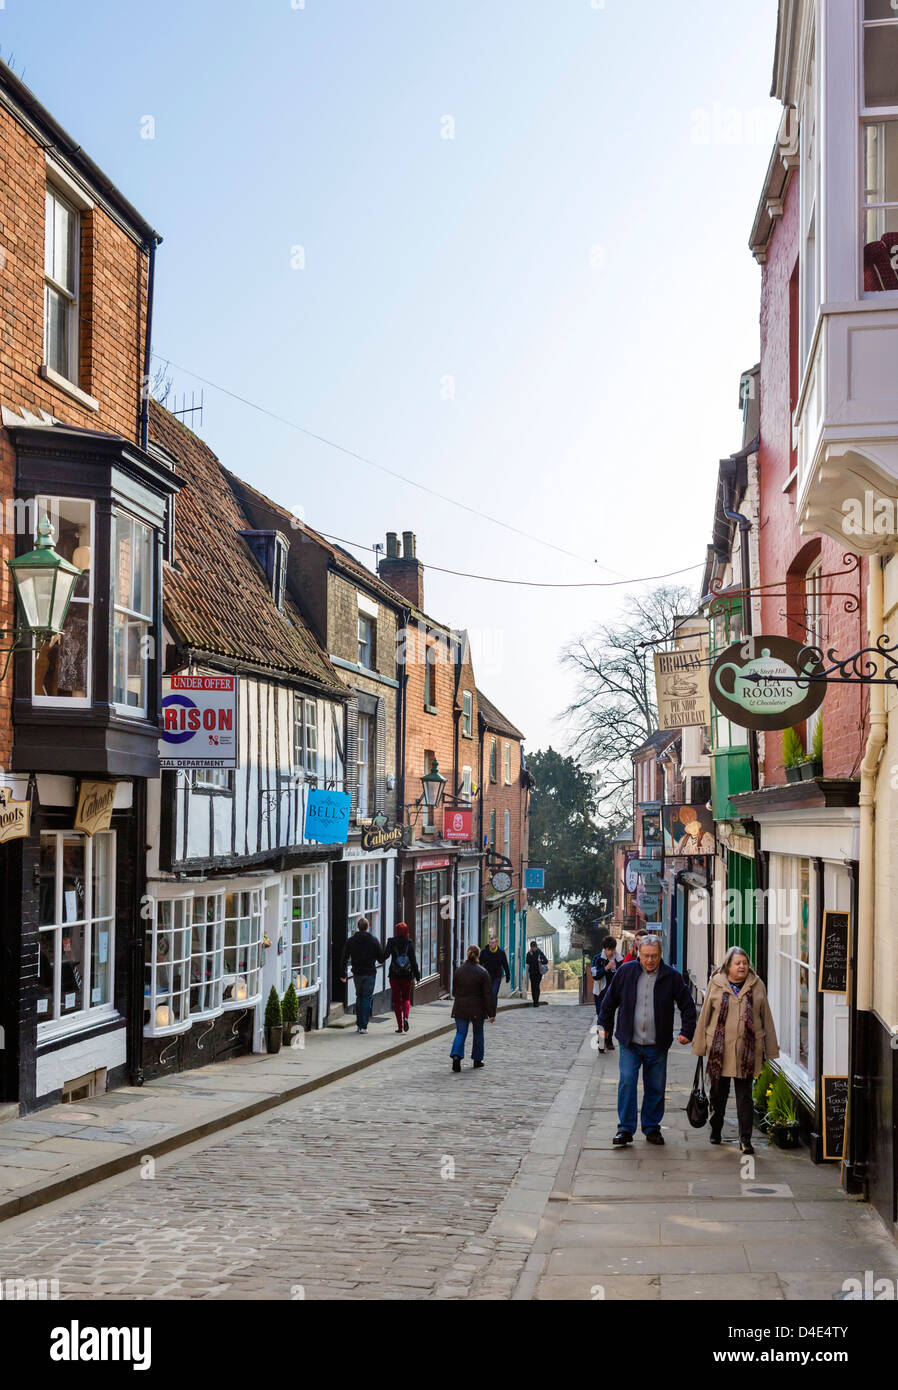 The famous Steep Hill in the historic old town, Lincoln, Lincolnshire, East Midlands, UK Stock Photo